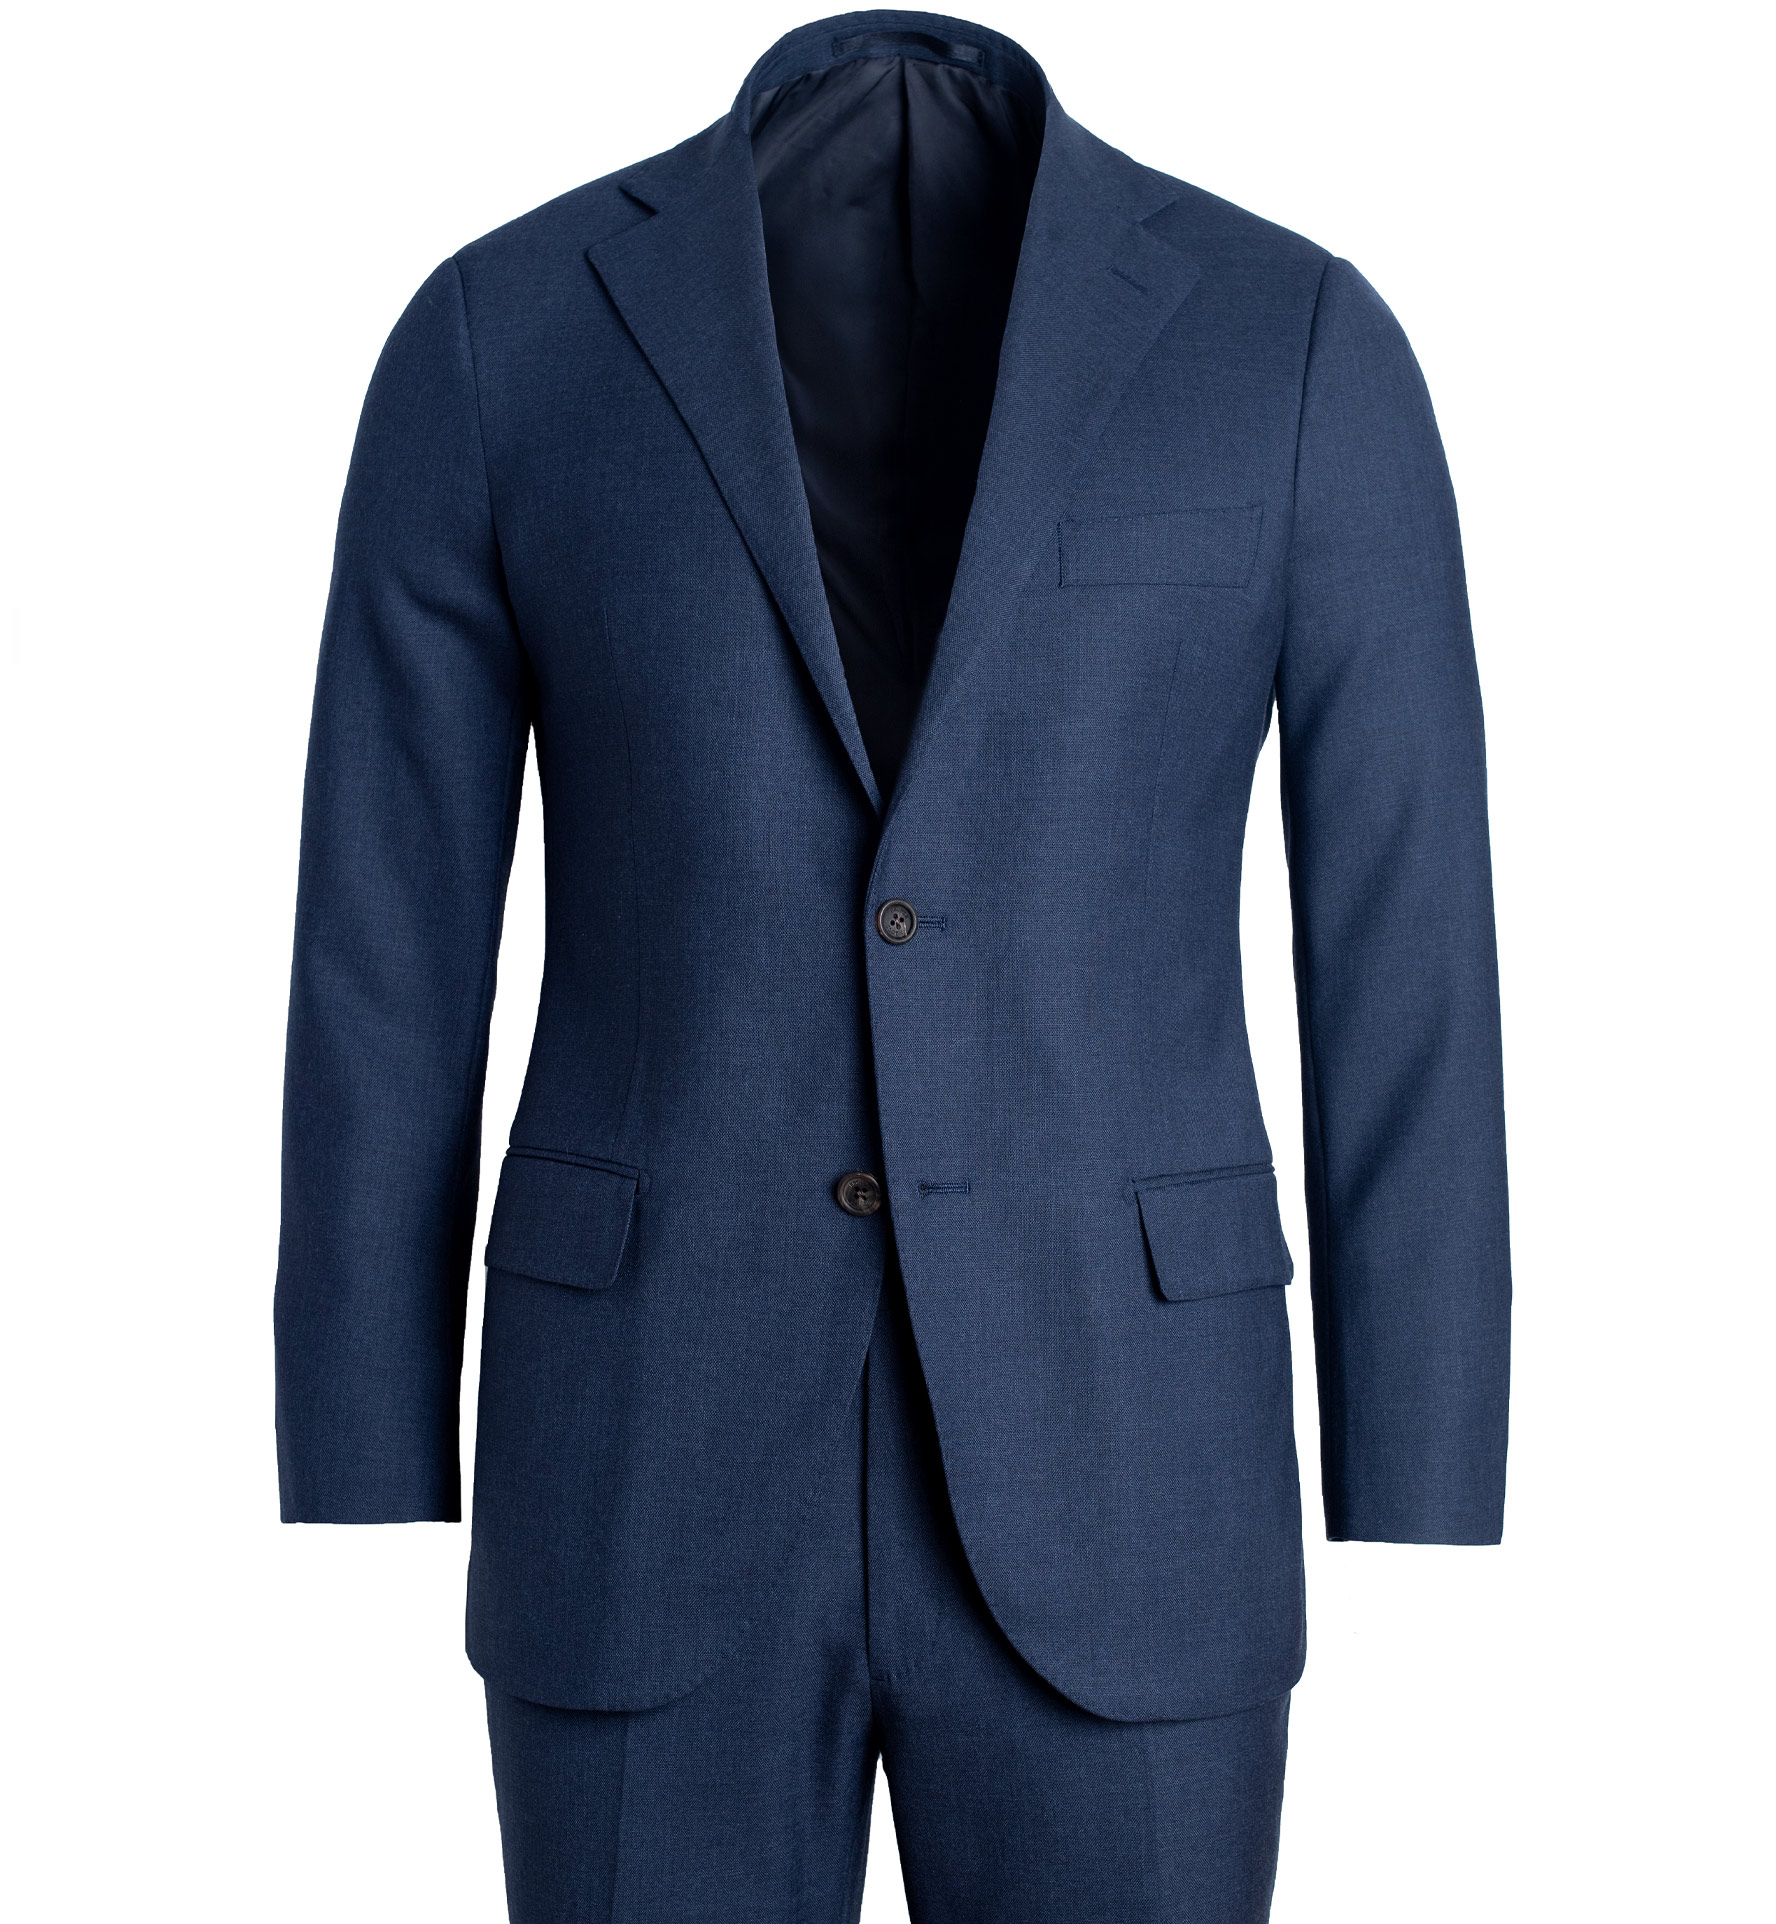 Zoom Image of Allen Navy Comfort Fresco Suit